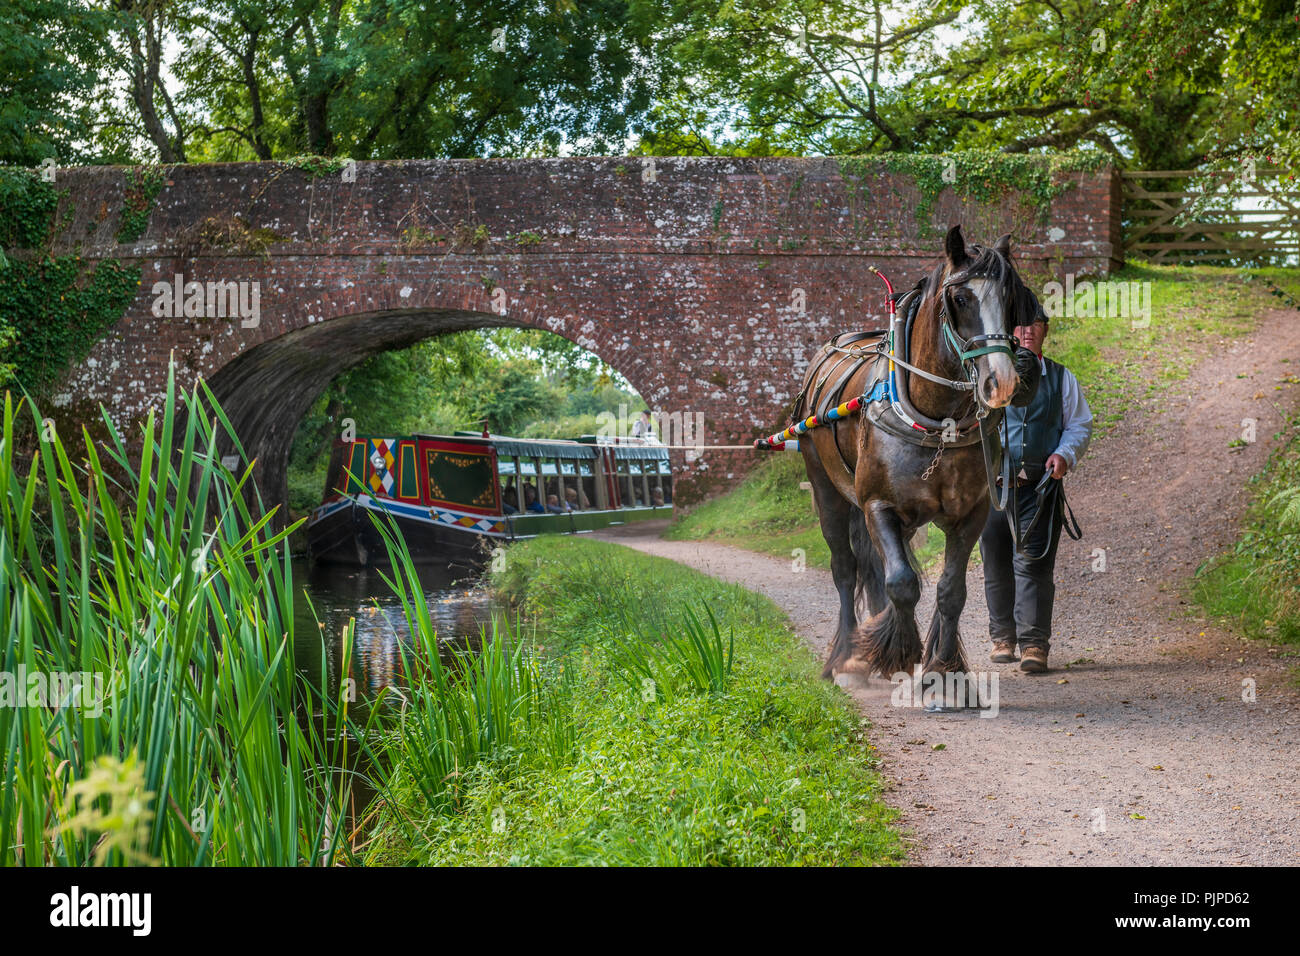 'Tivertonian', the last horse-drawn barge in the West Country, sets off for another serene trip down the Grand Western Canal near Tiverton in Devon. - Stock Image